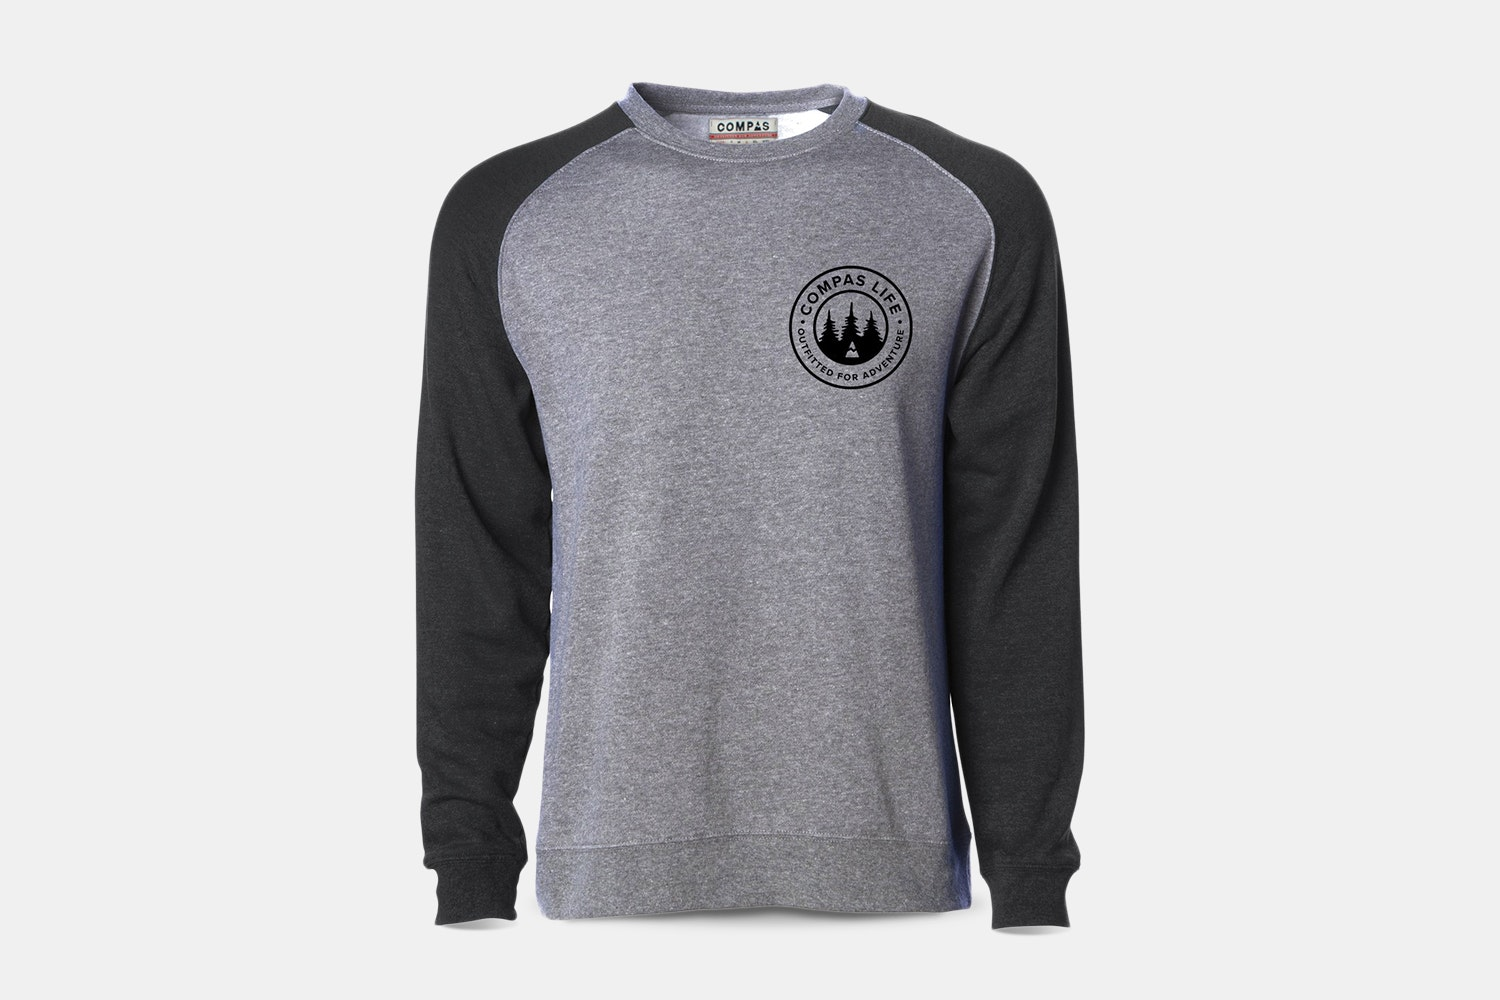 Outfitted Two-Tone Crewneck